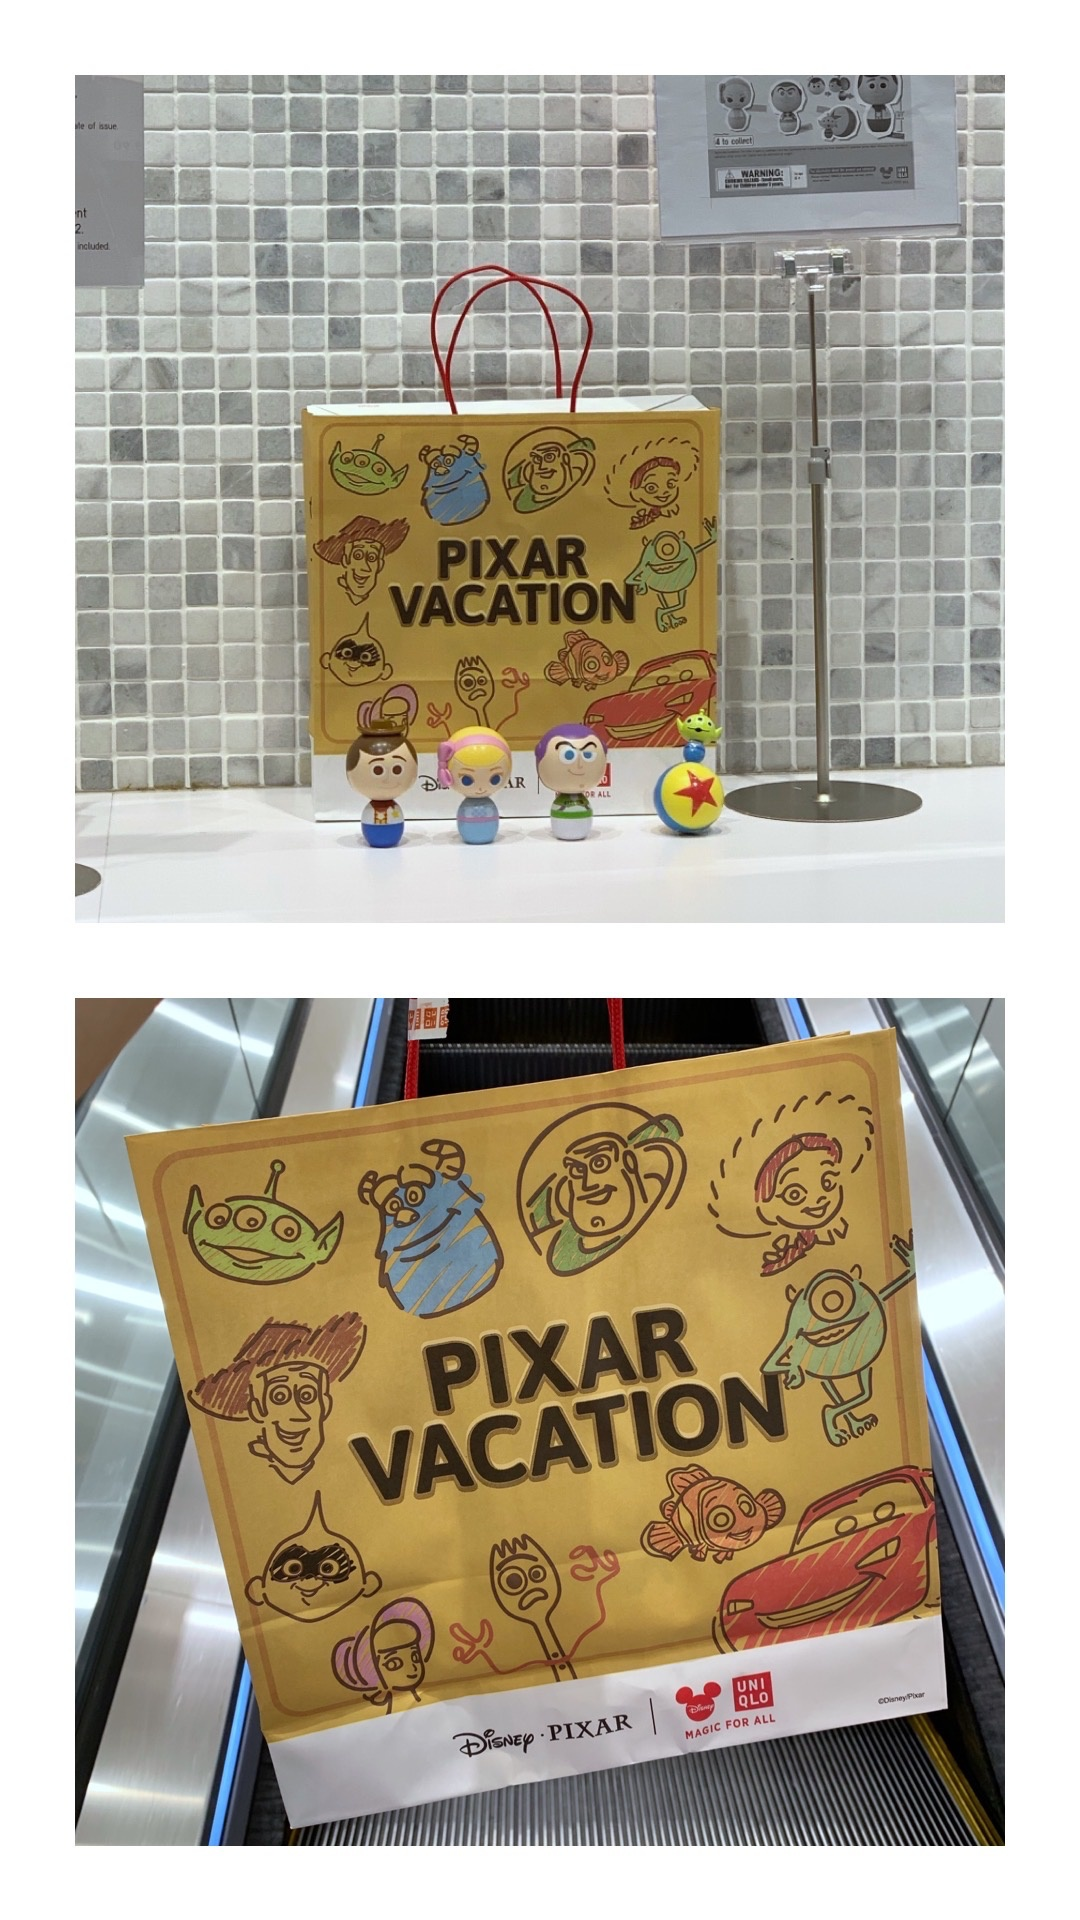 Uniqlo Pixar Vacation | joanne-khoo.com